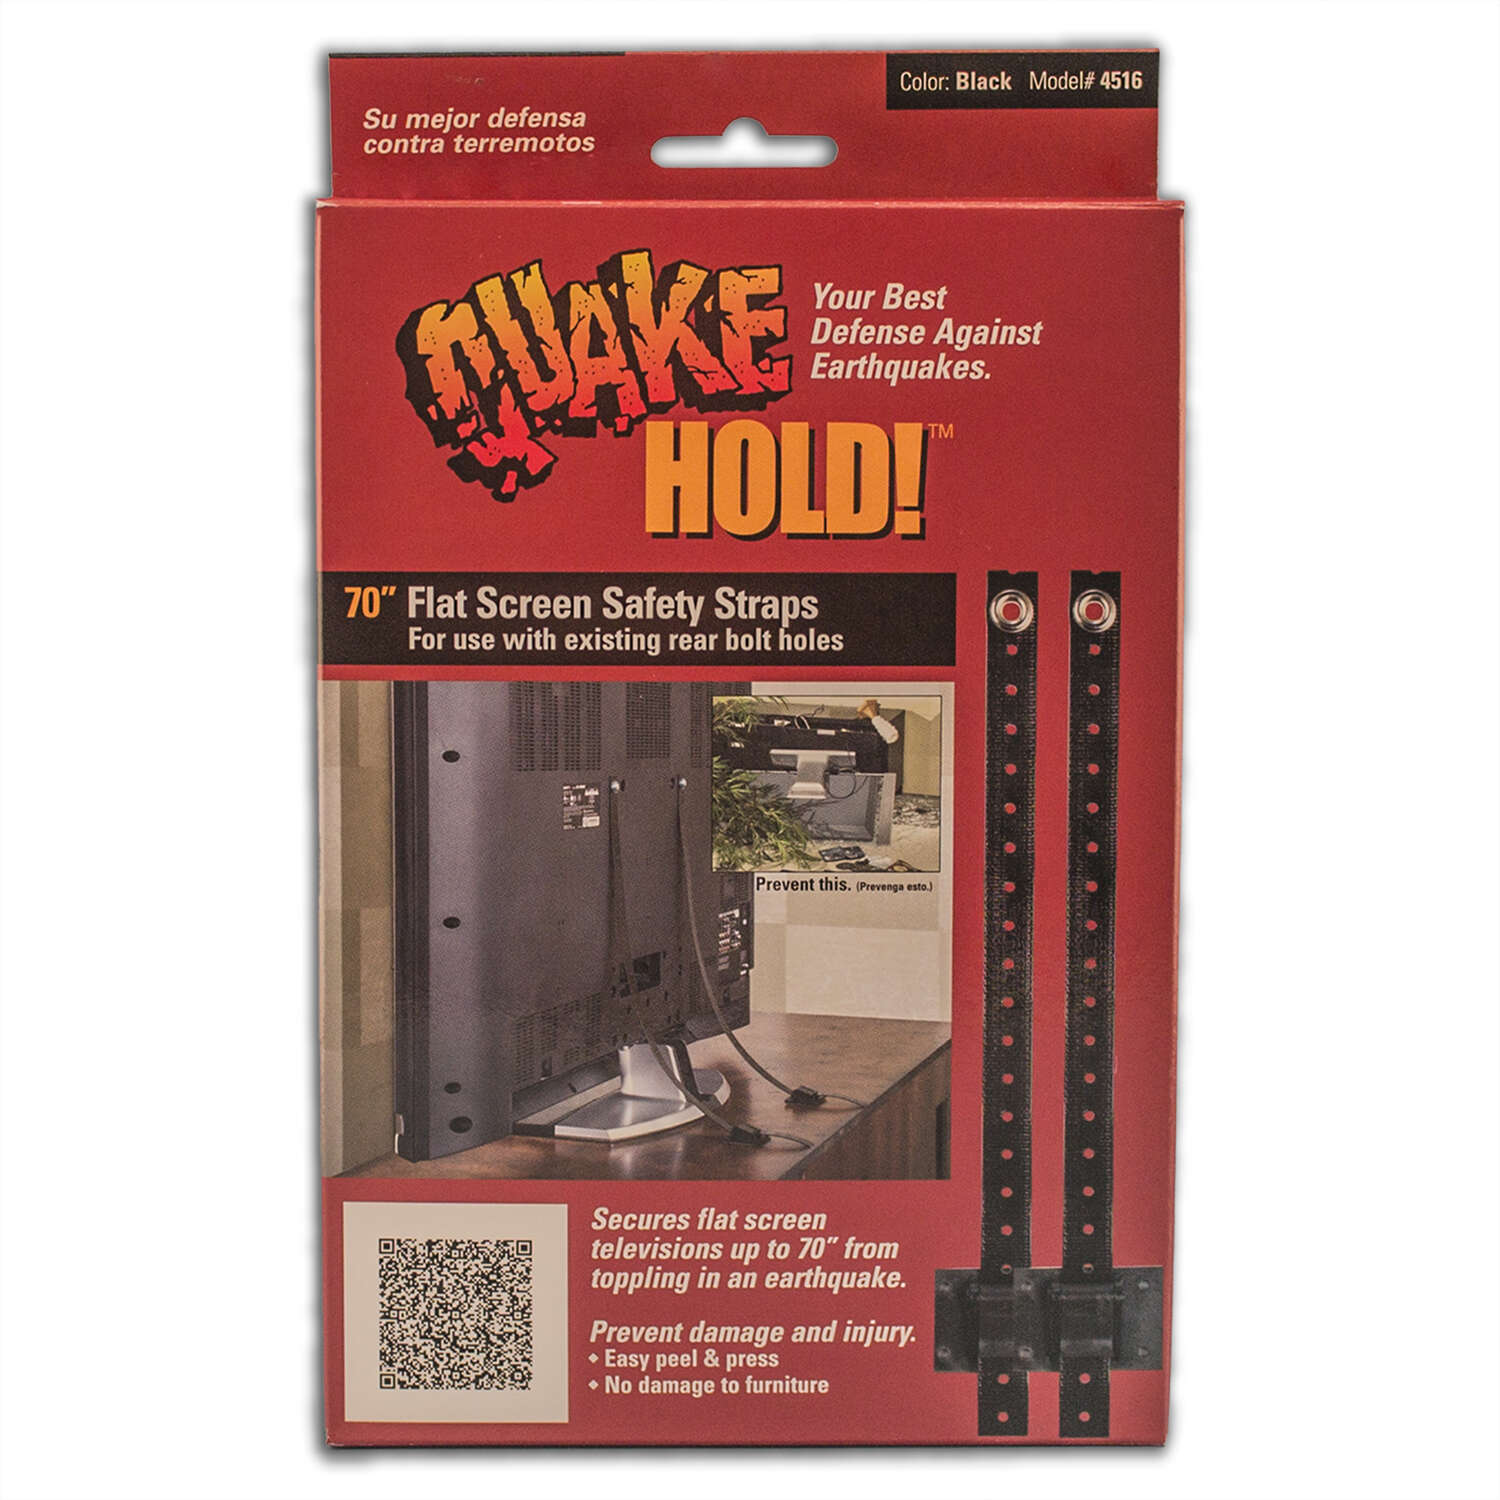 Quake Hold  10 in. to 70 in. 150 lb. capacity Flat Screen Safety Strap